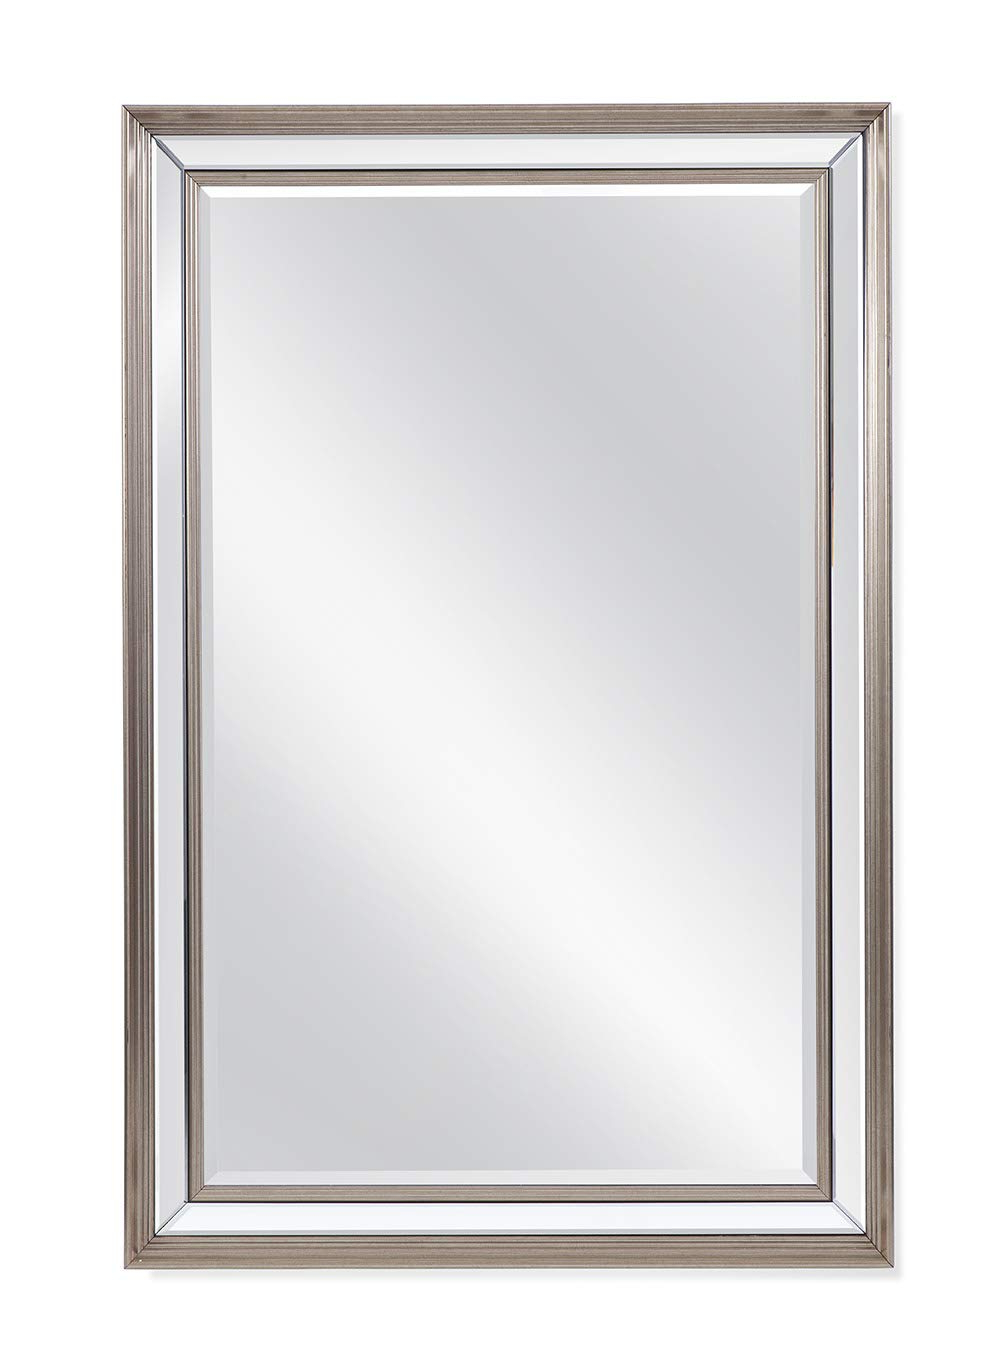 Amazon: Bassett Mirror Wall Mirror In Silver Finish M4299b: Home Throughout Most Recently Released Bassett Wall Mirrors (View 3 of 20)